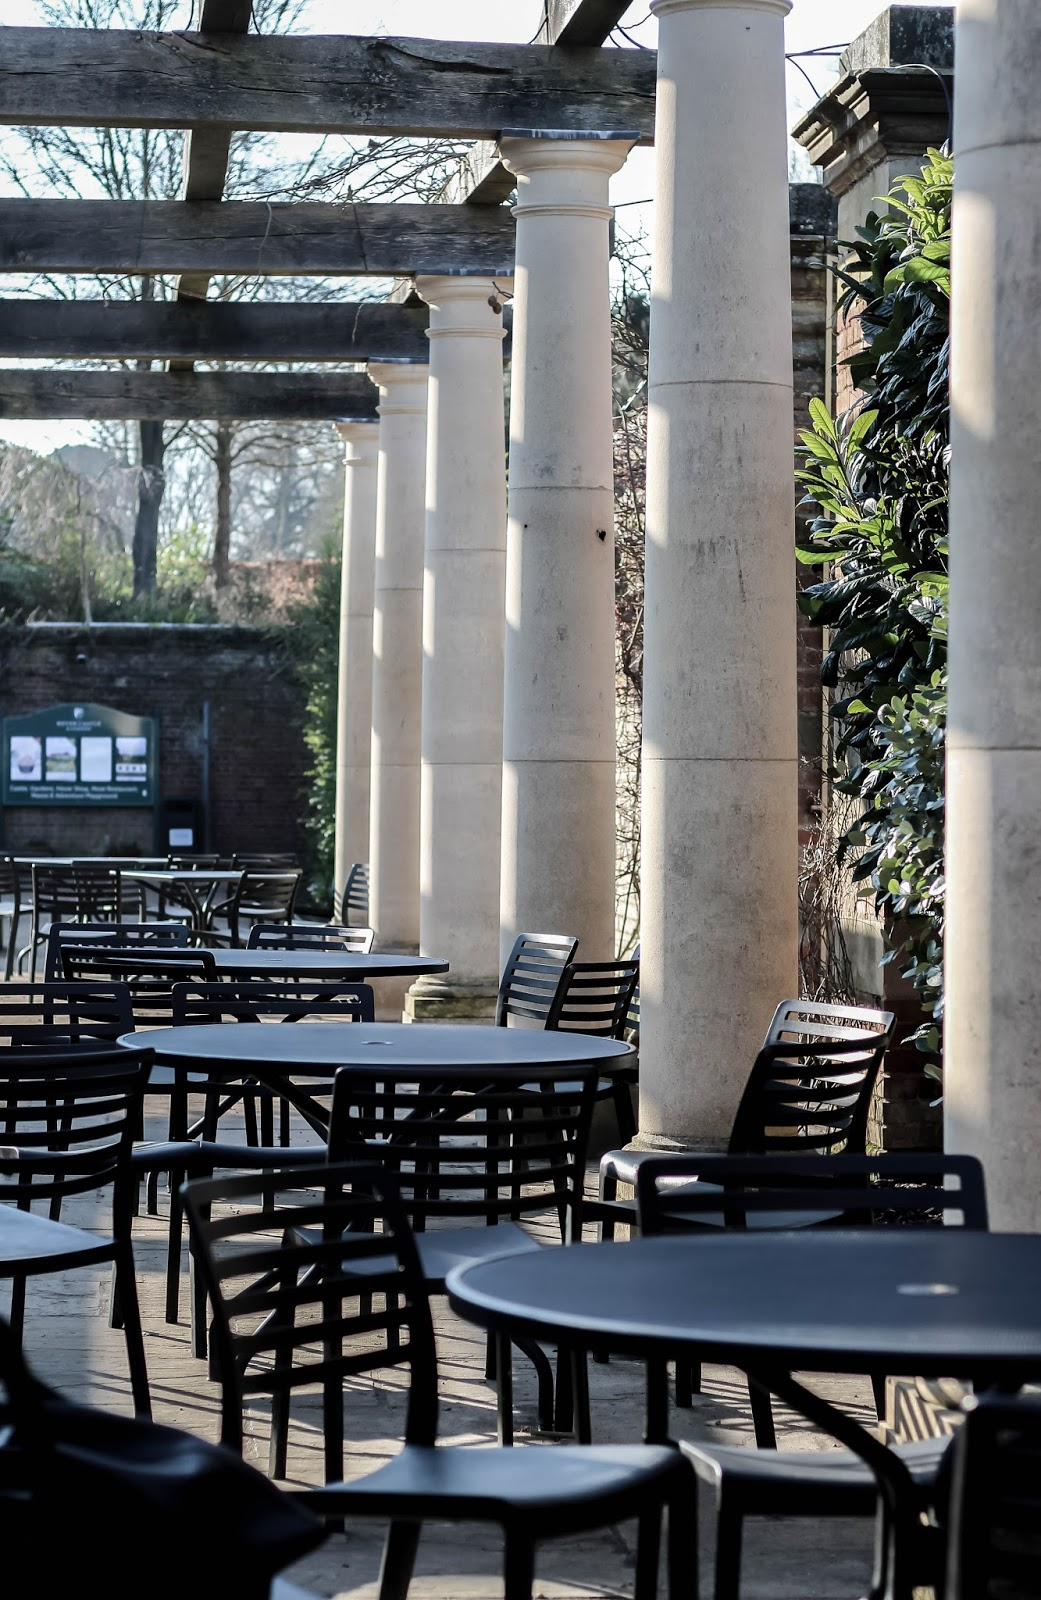 Cafe with Pillars Italianate Architecture in England